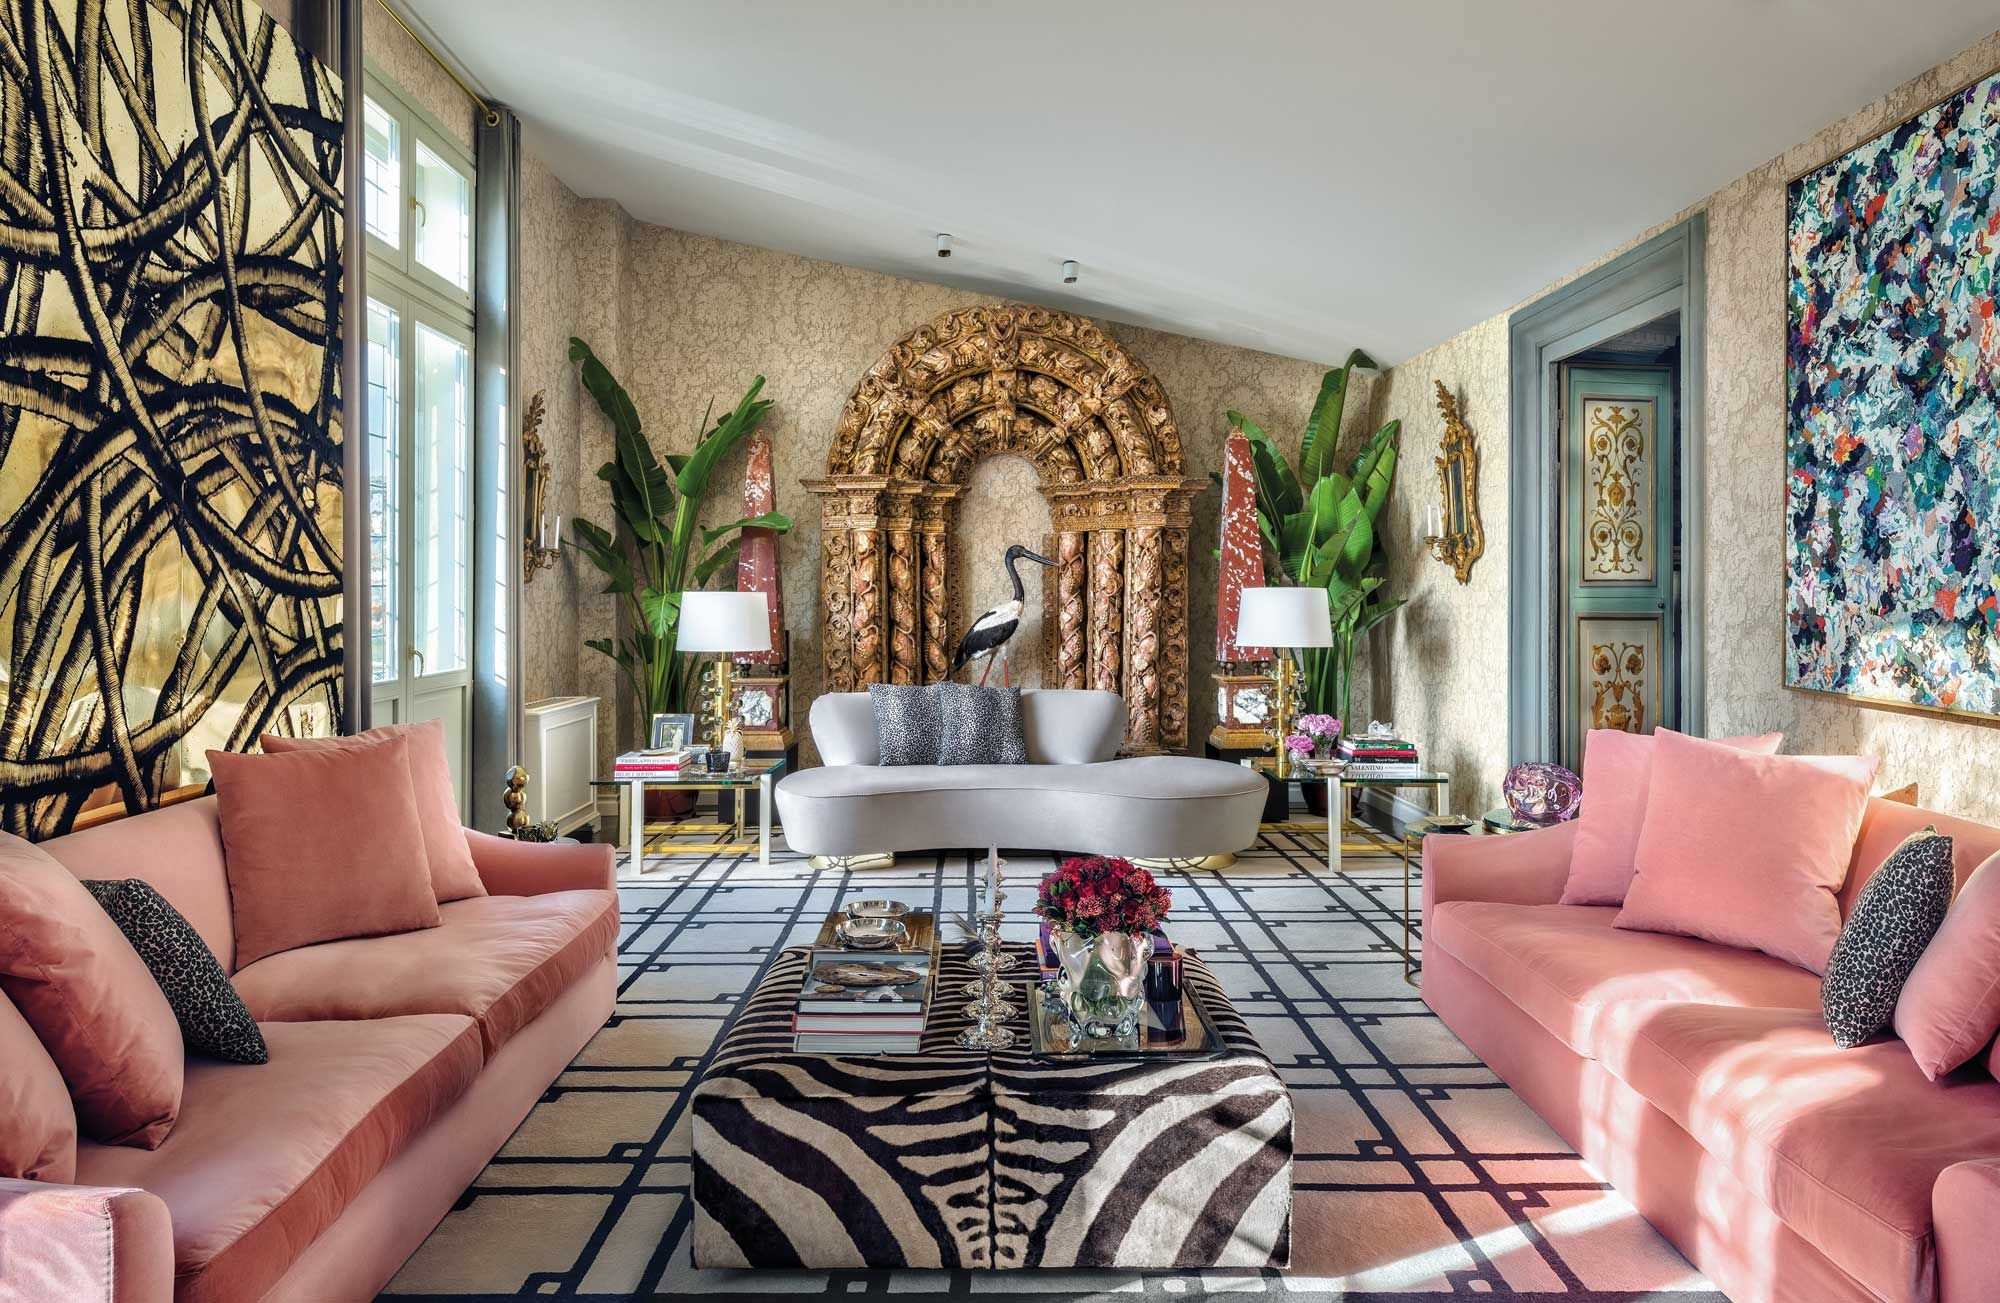 Inside Aquazzura Founder Edgardo Osorio's Eclectic Florentine Home